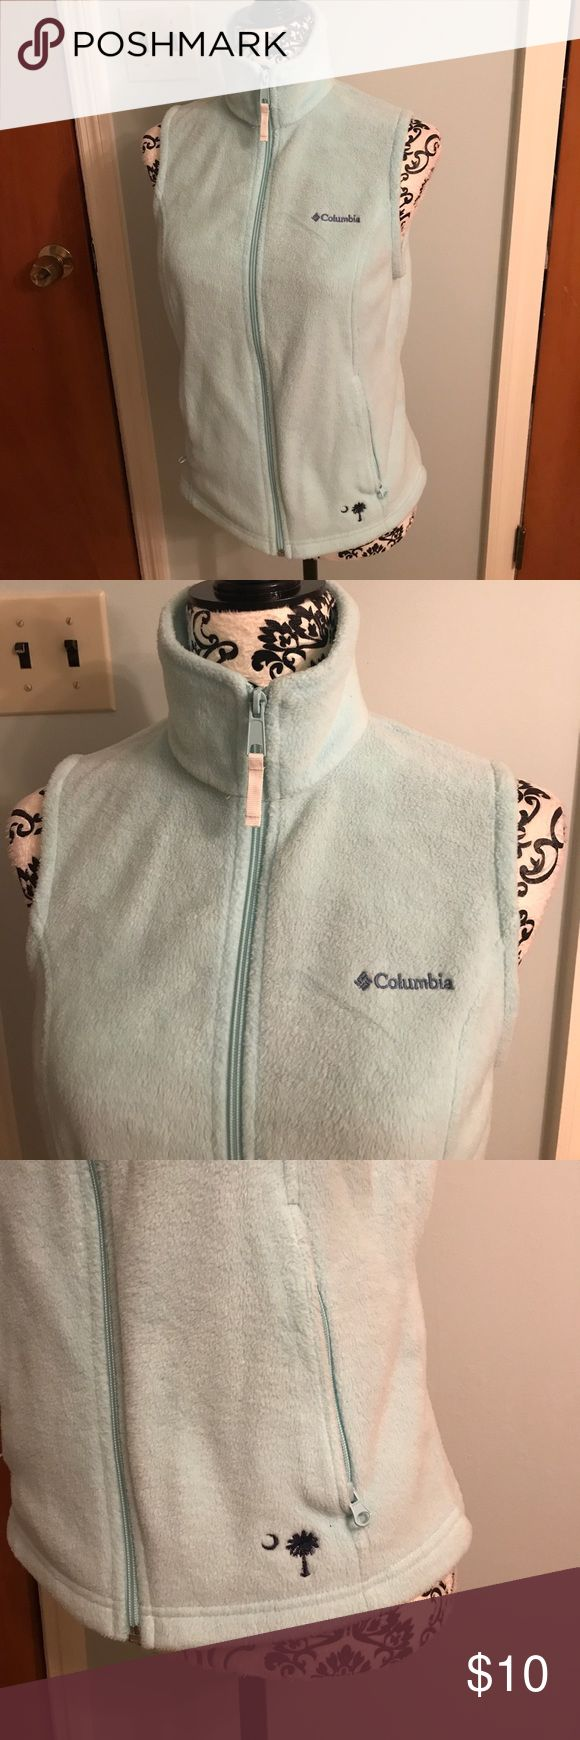 Women's Columbia Vest Women's Columbia Fleece Vest. In great used condition. No stains or signs of wear. Palmetto Tree & Moon Under left front pocket. Fabric pockets on inside. Columbia Jackets & Coats Vests